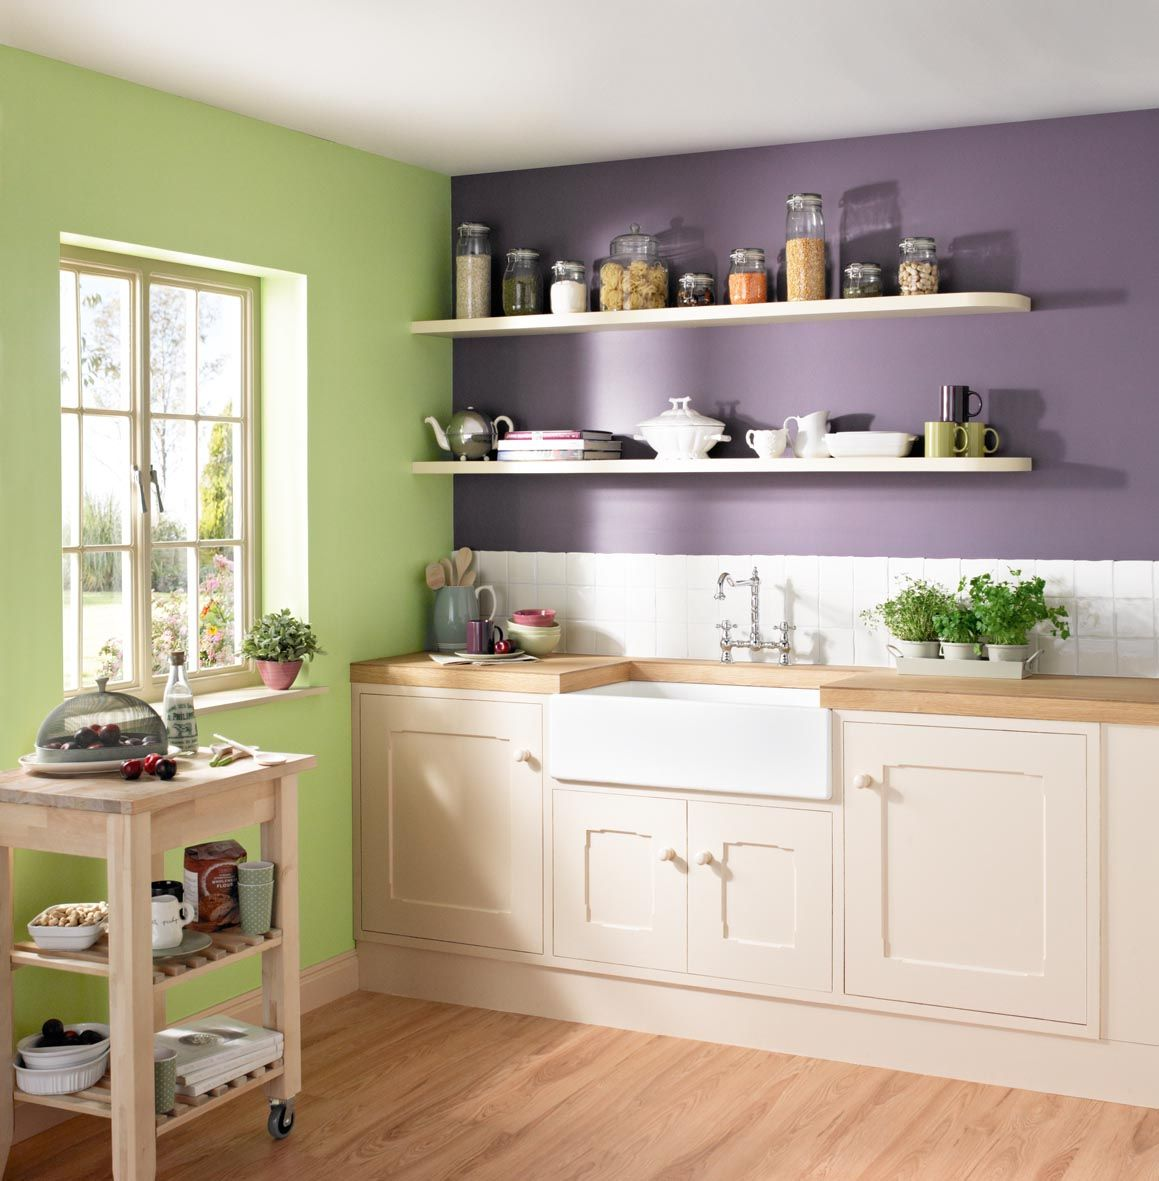 What Color To Paint Kitchen Walls: 10 Beautiful Kitchens With Purple Walls